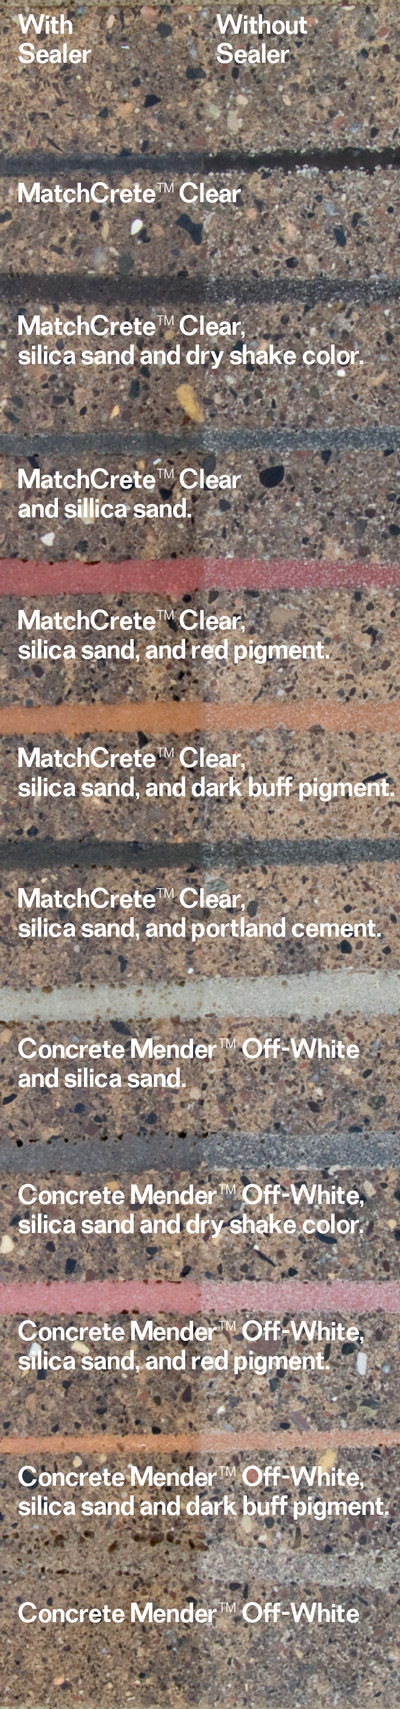 MatchCrete™ Clear and Concrete Mender™ Off-white user custom color samples.